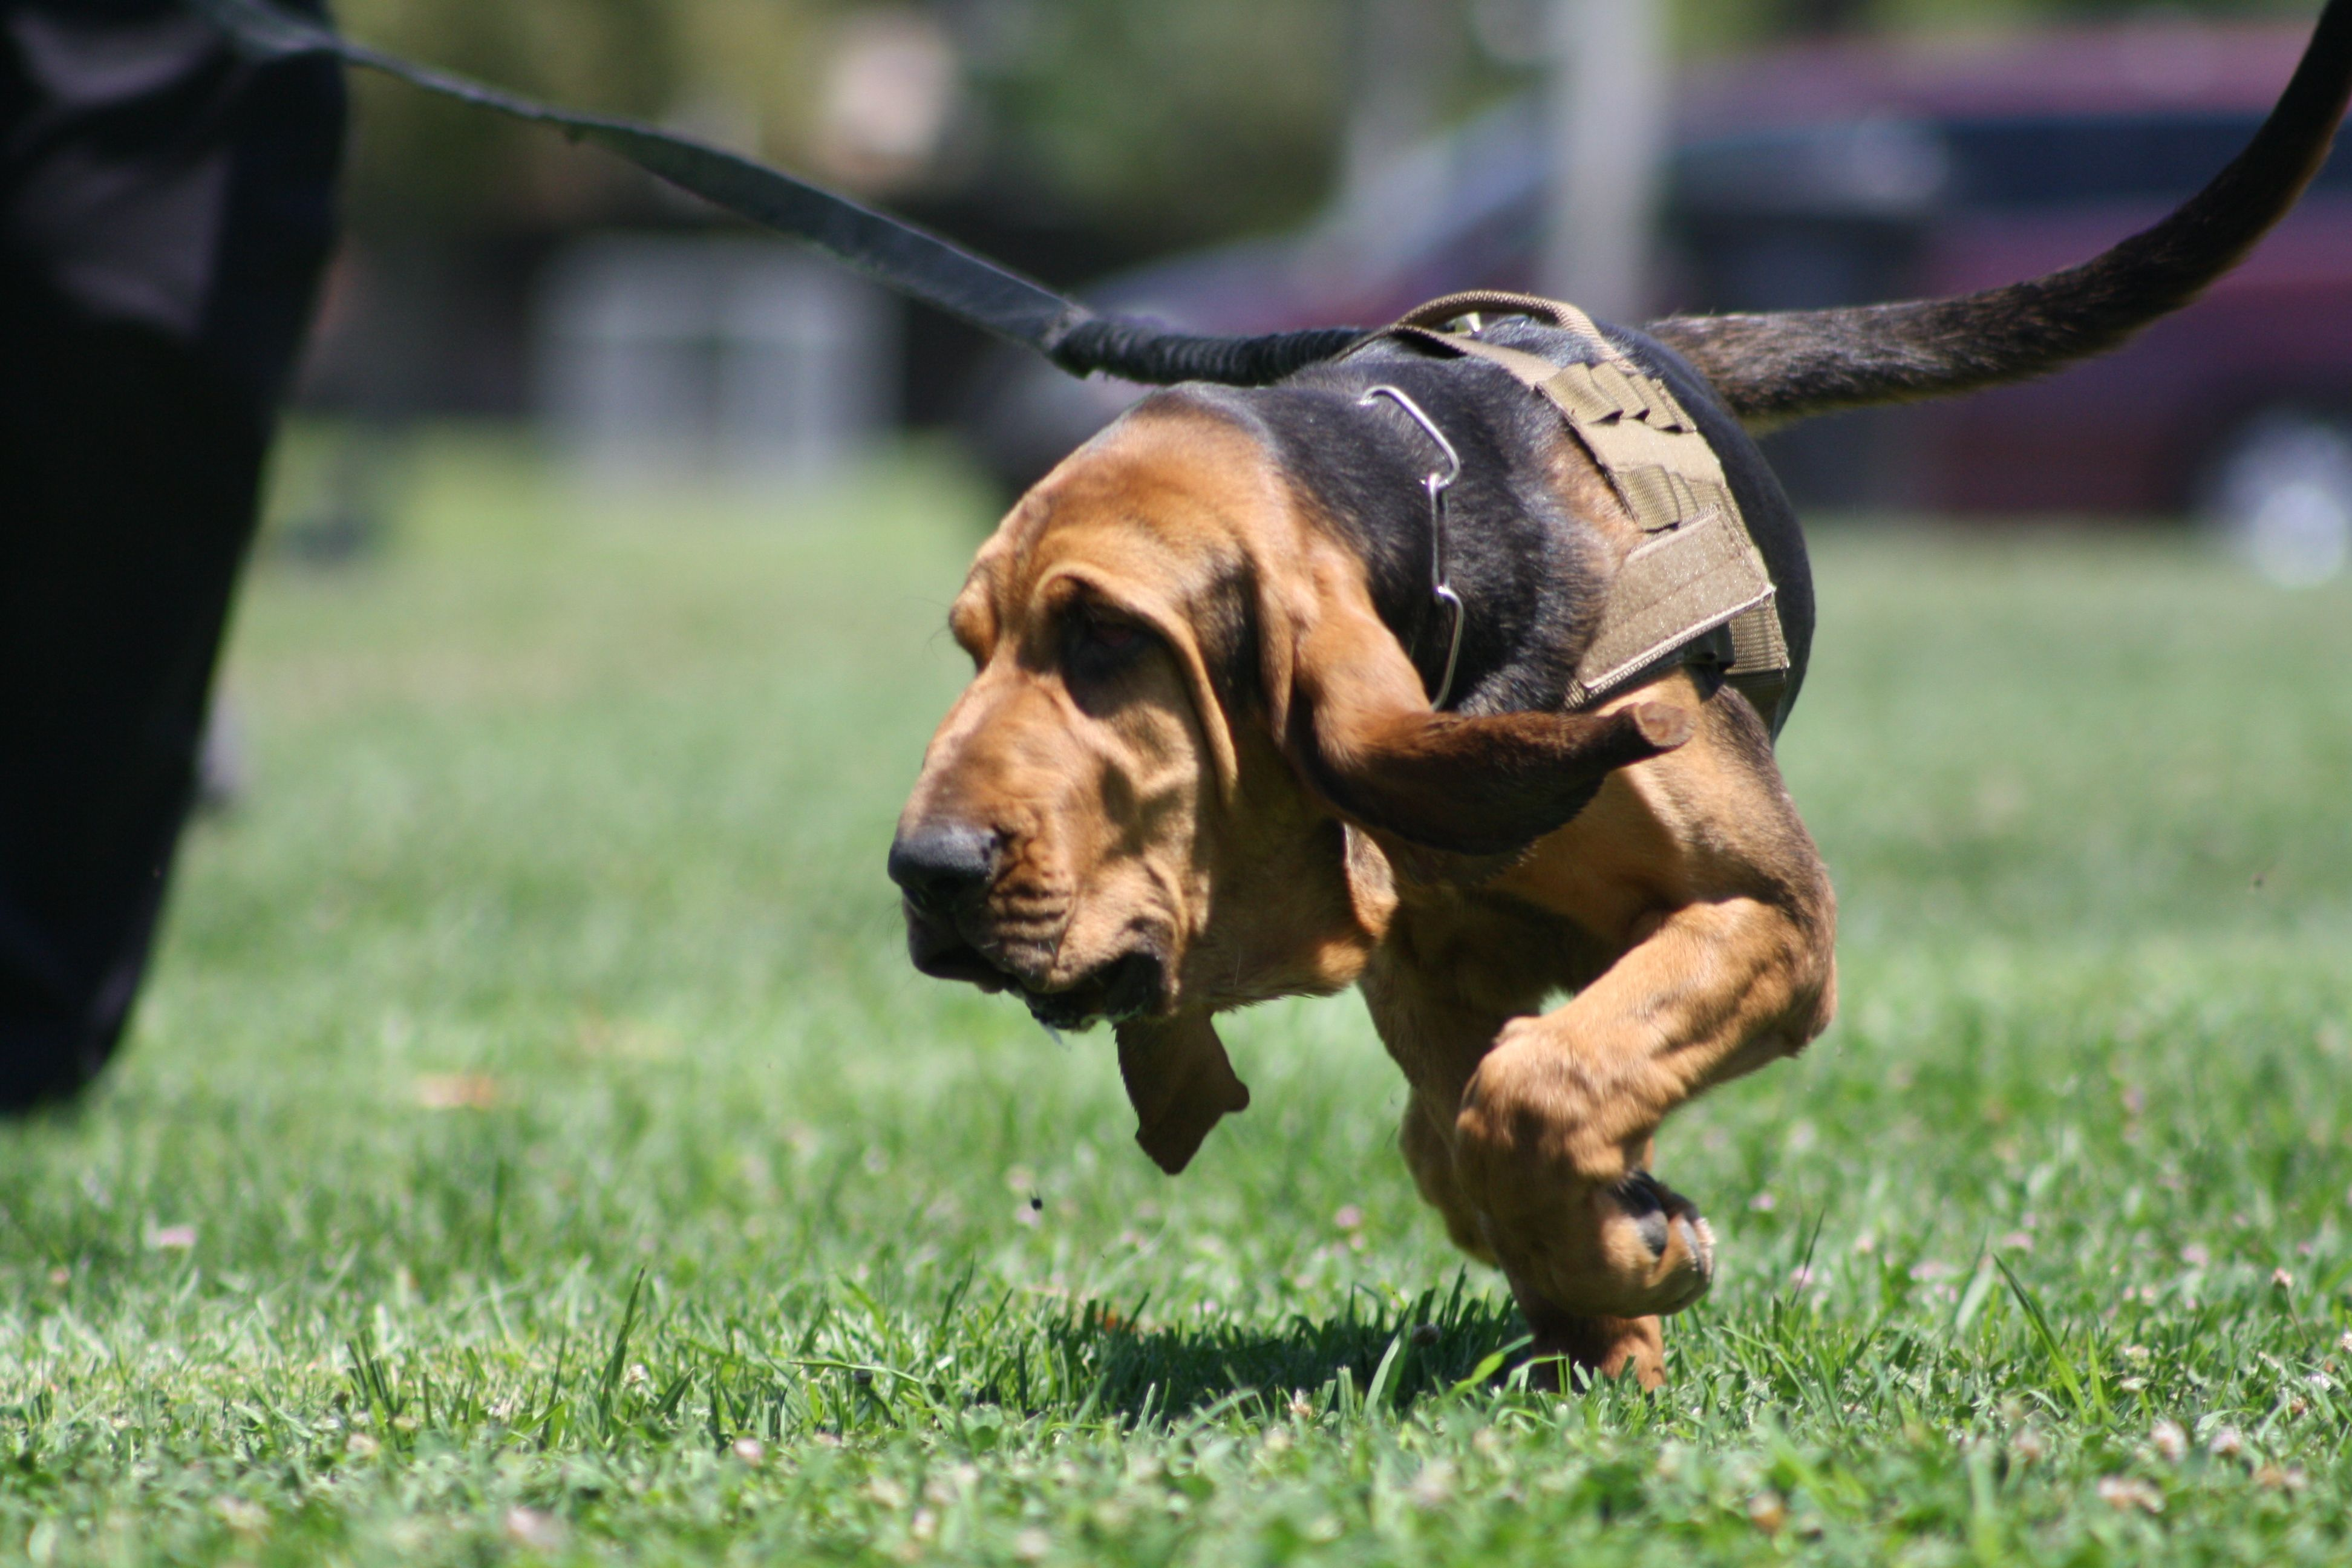 Robert Took This Picture In Training Bloodhound Puppy Learning To